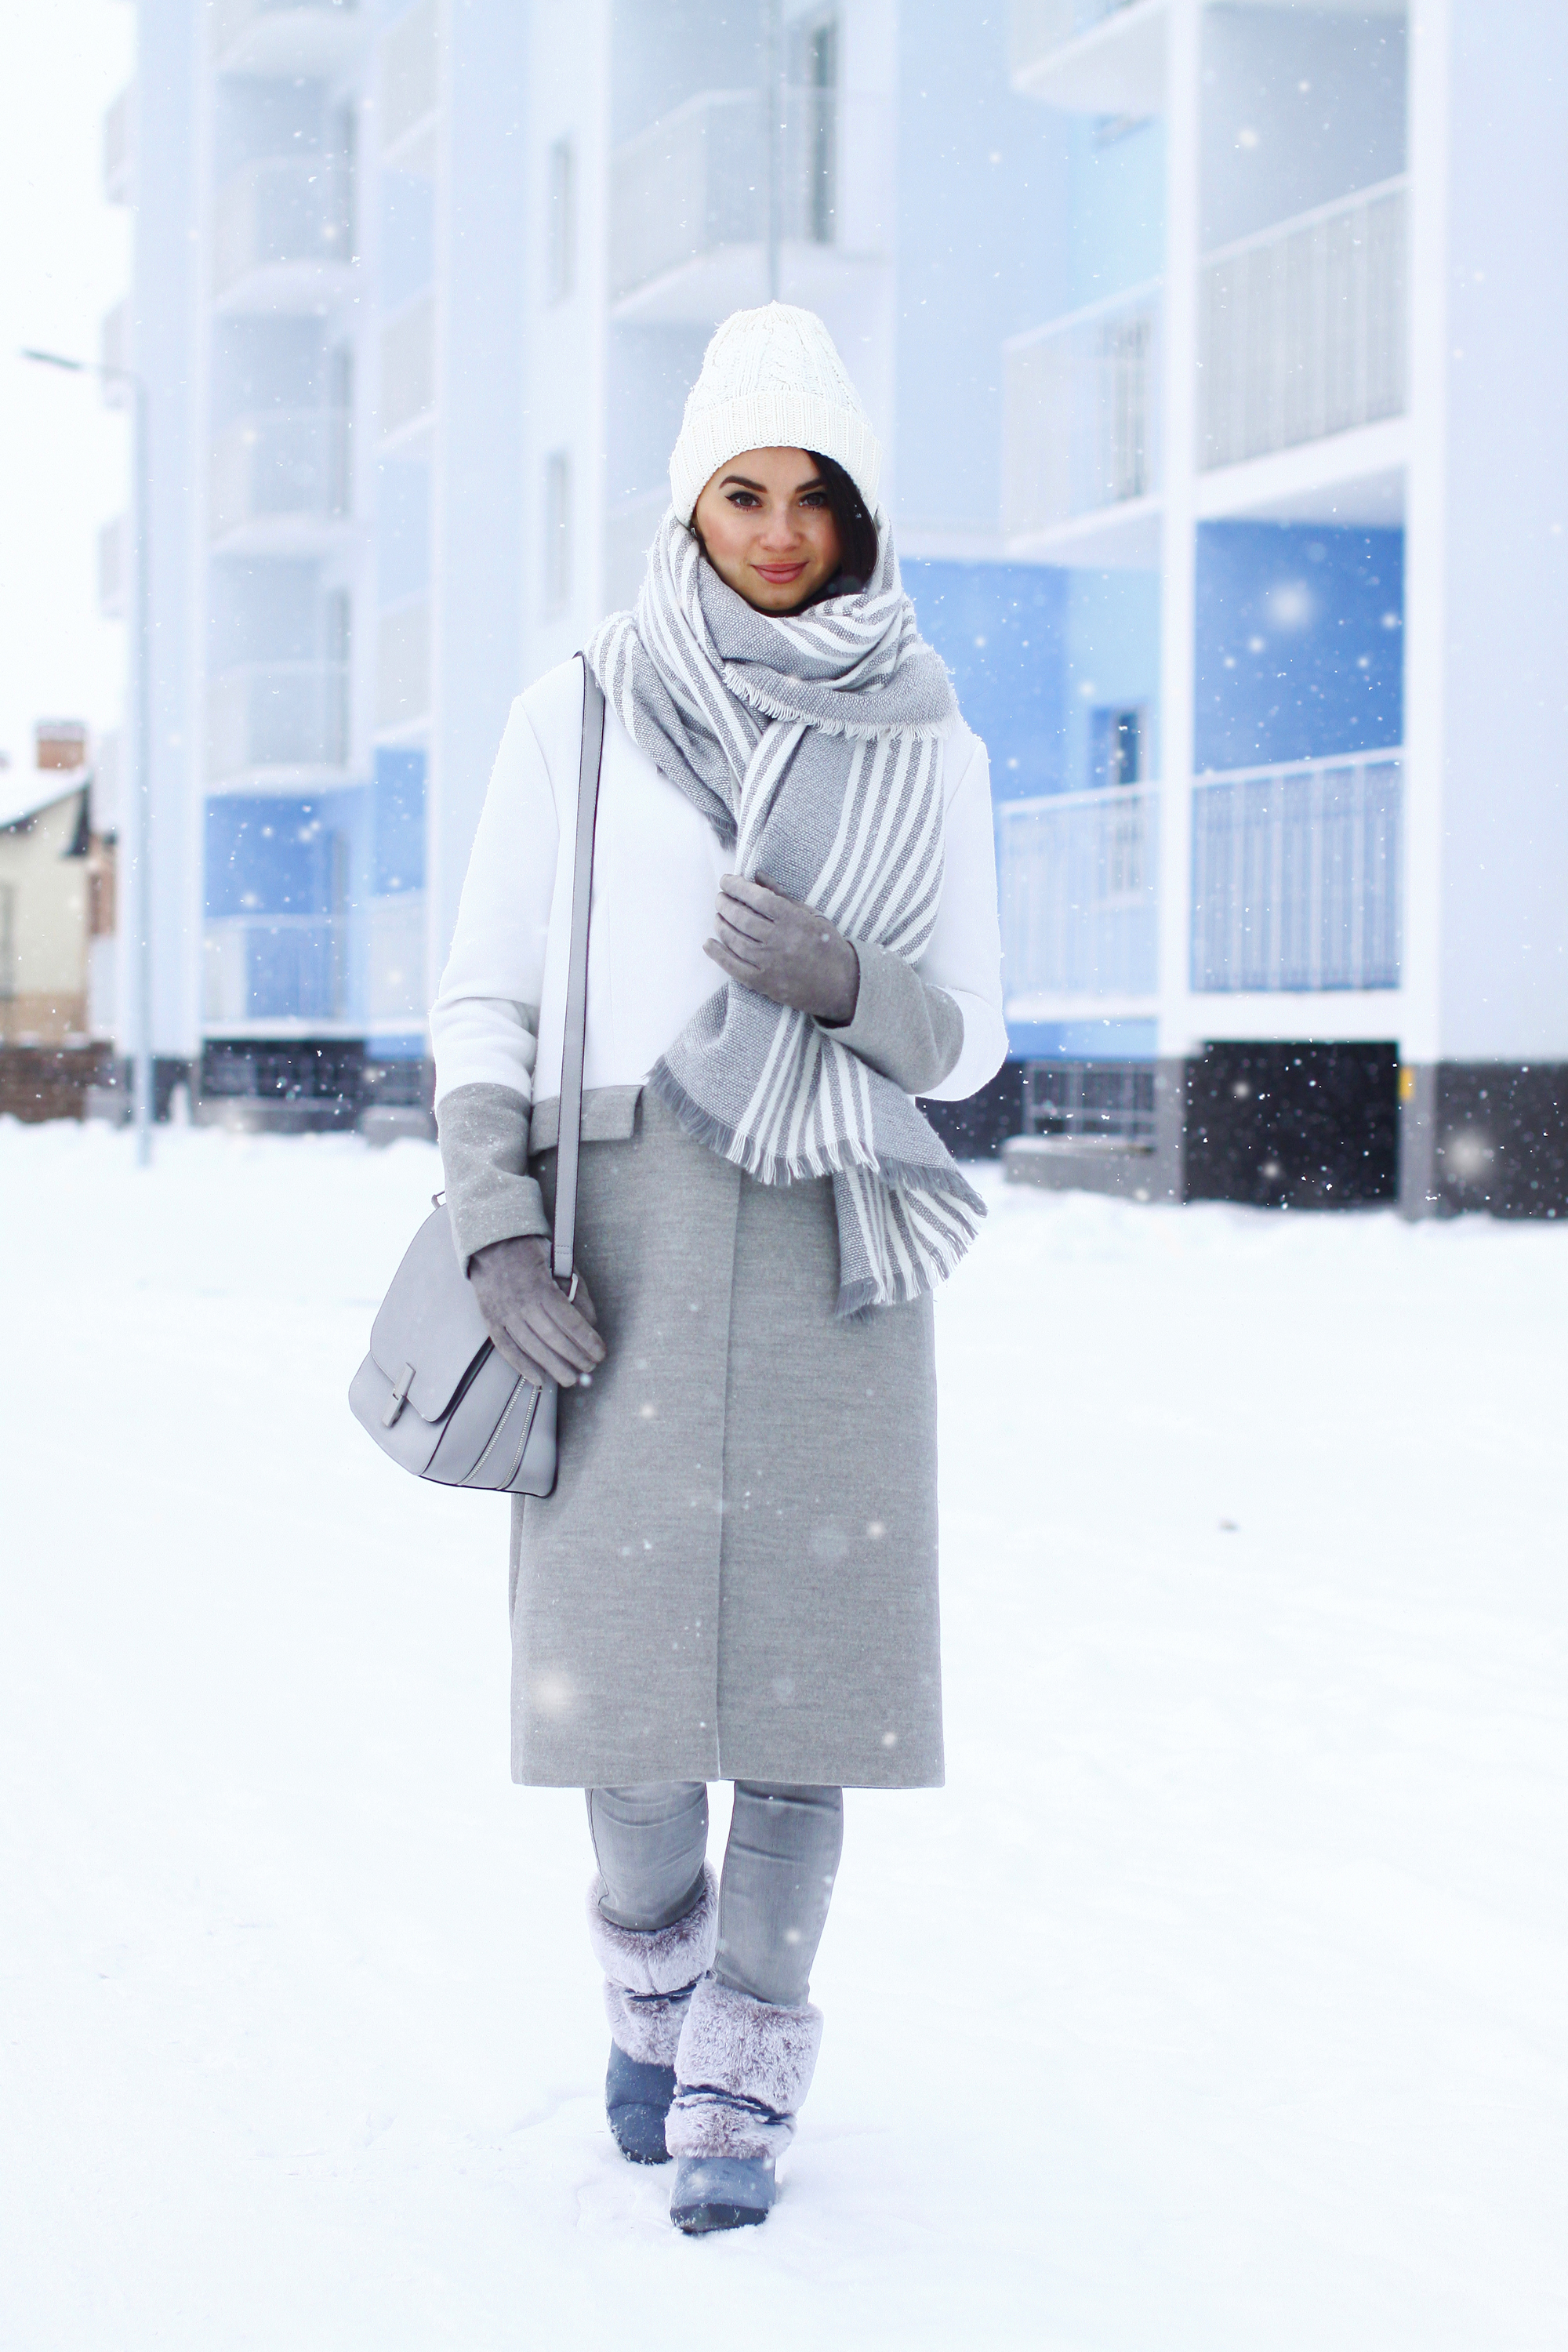 c9d456e8585 How to Wear Grey Uggs (8 looks & outfits)   Women's Fashion ...